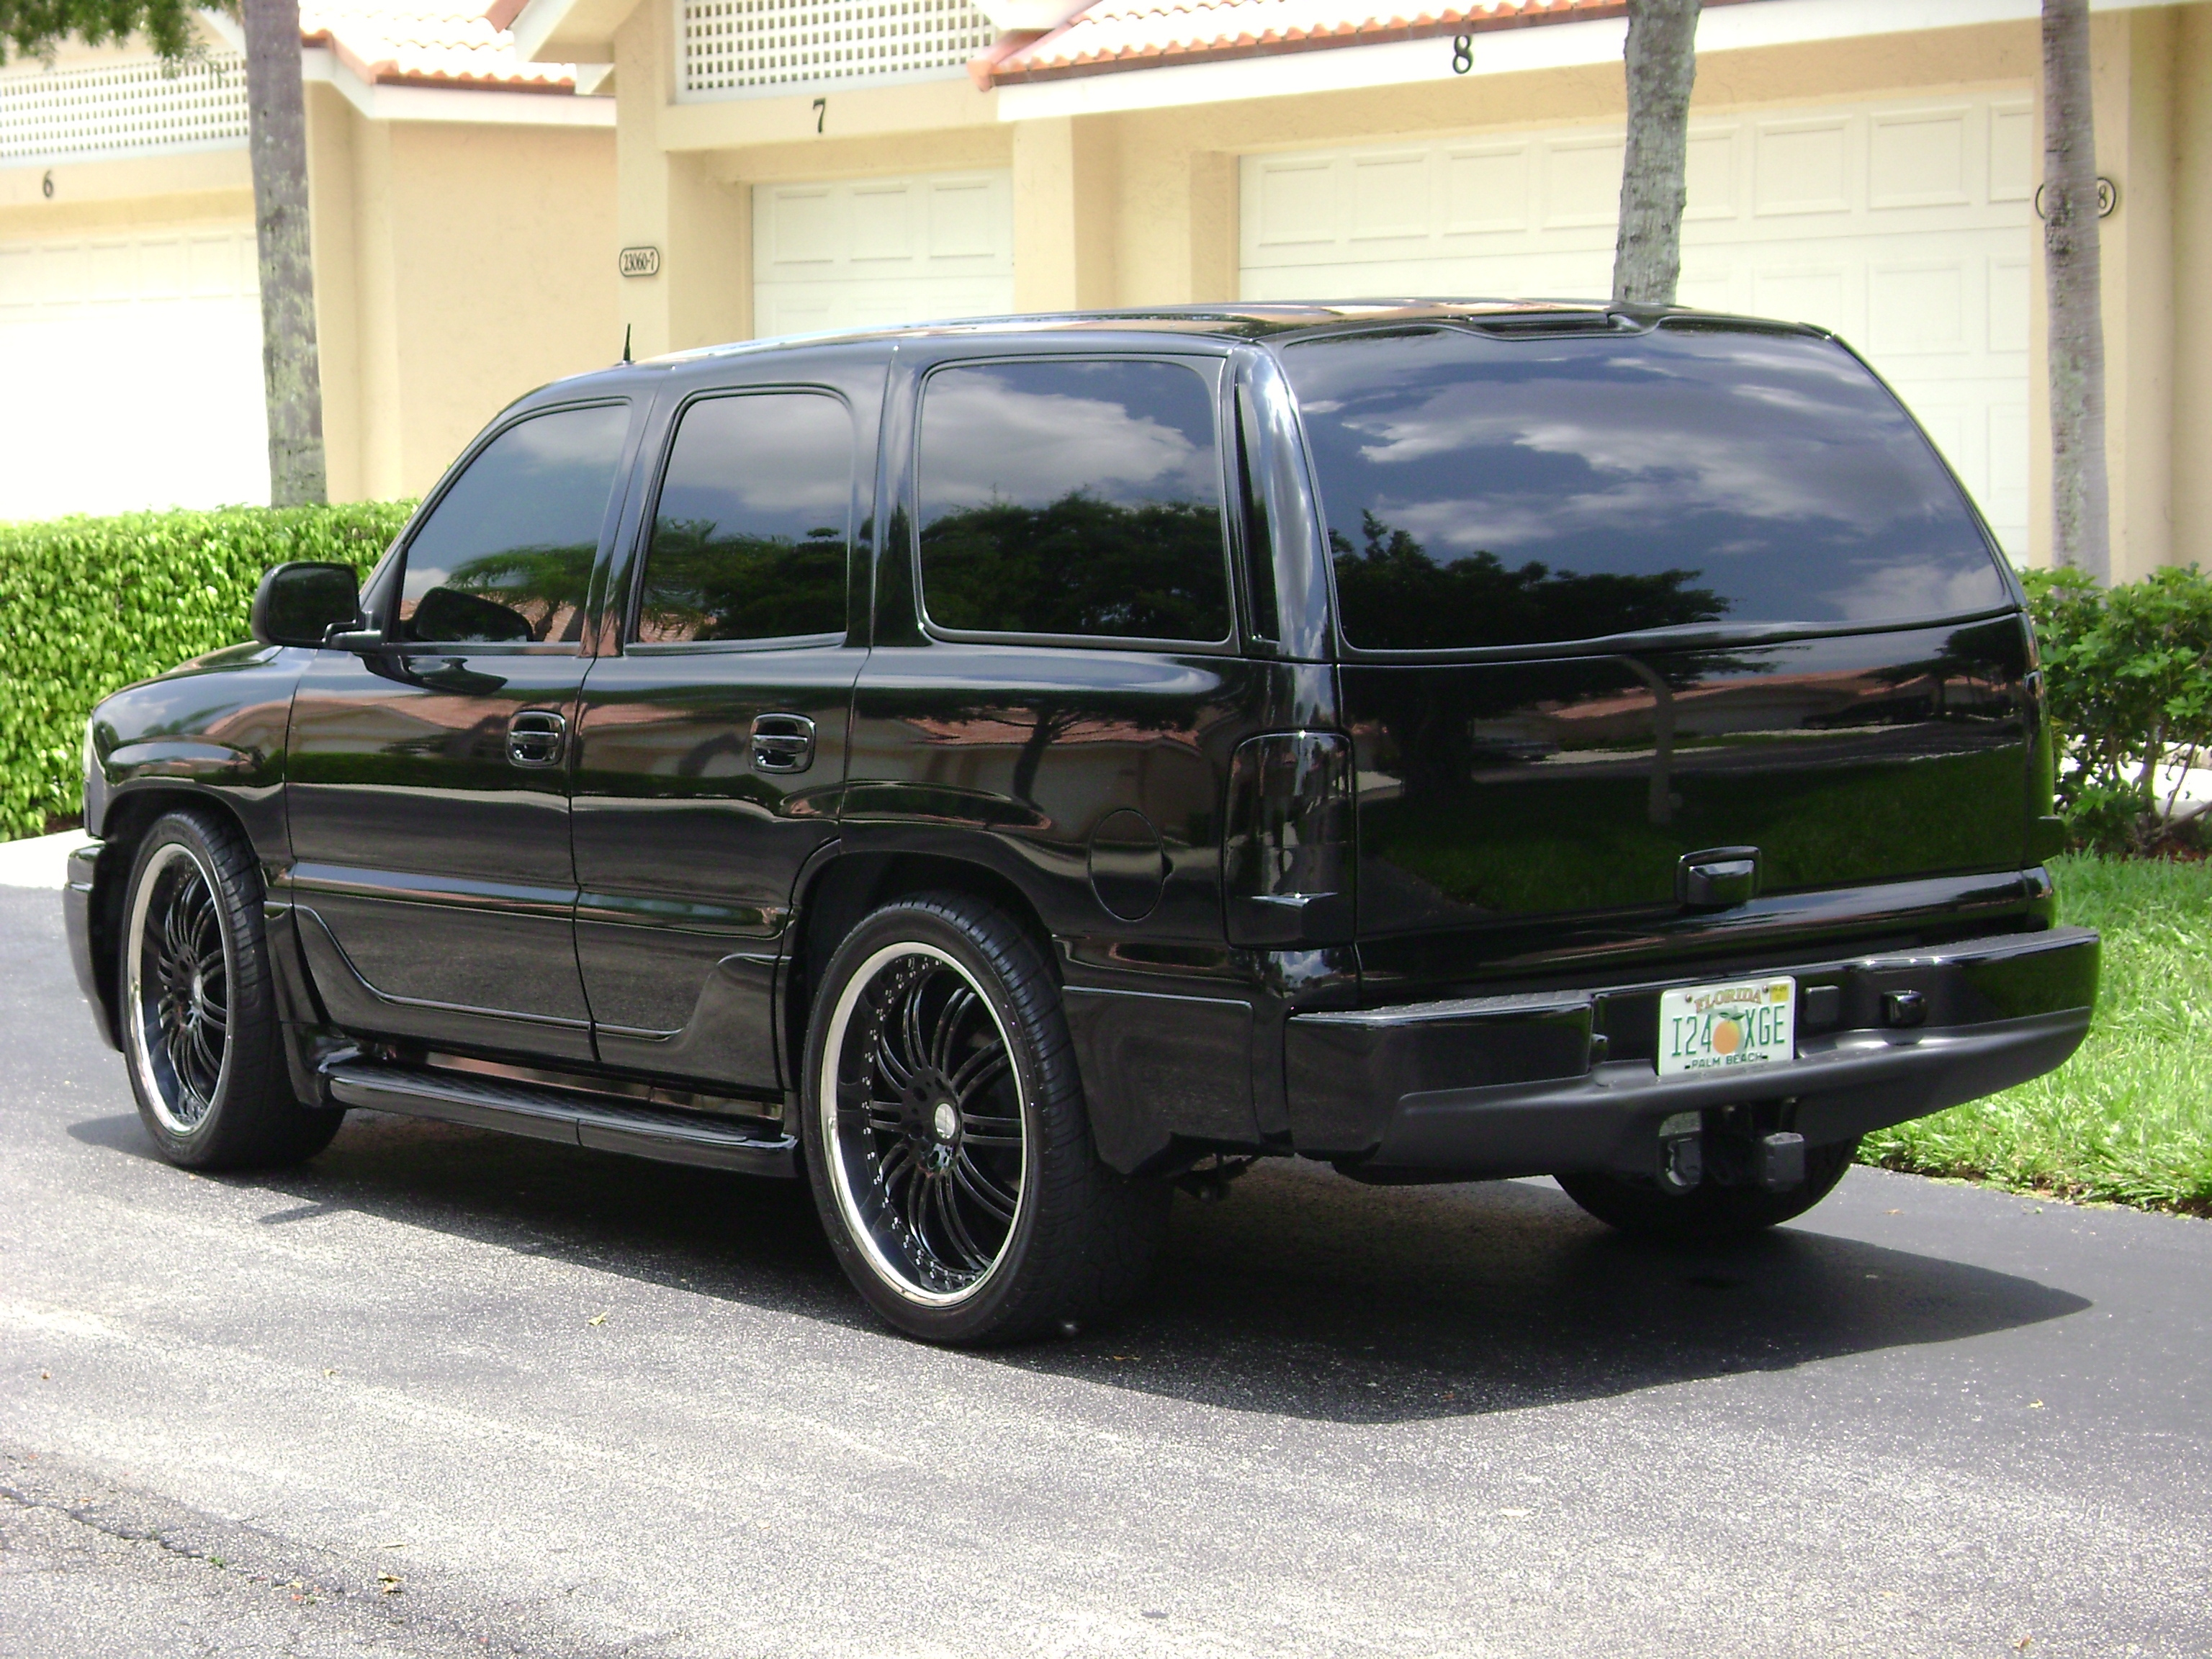 denalirob 2004 gmc yukon denali specs photos. Black Bedroom Furniture Sets. Home Design Ideas